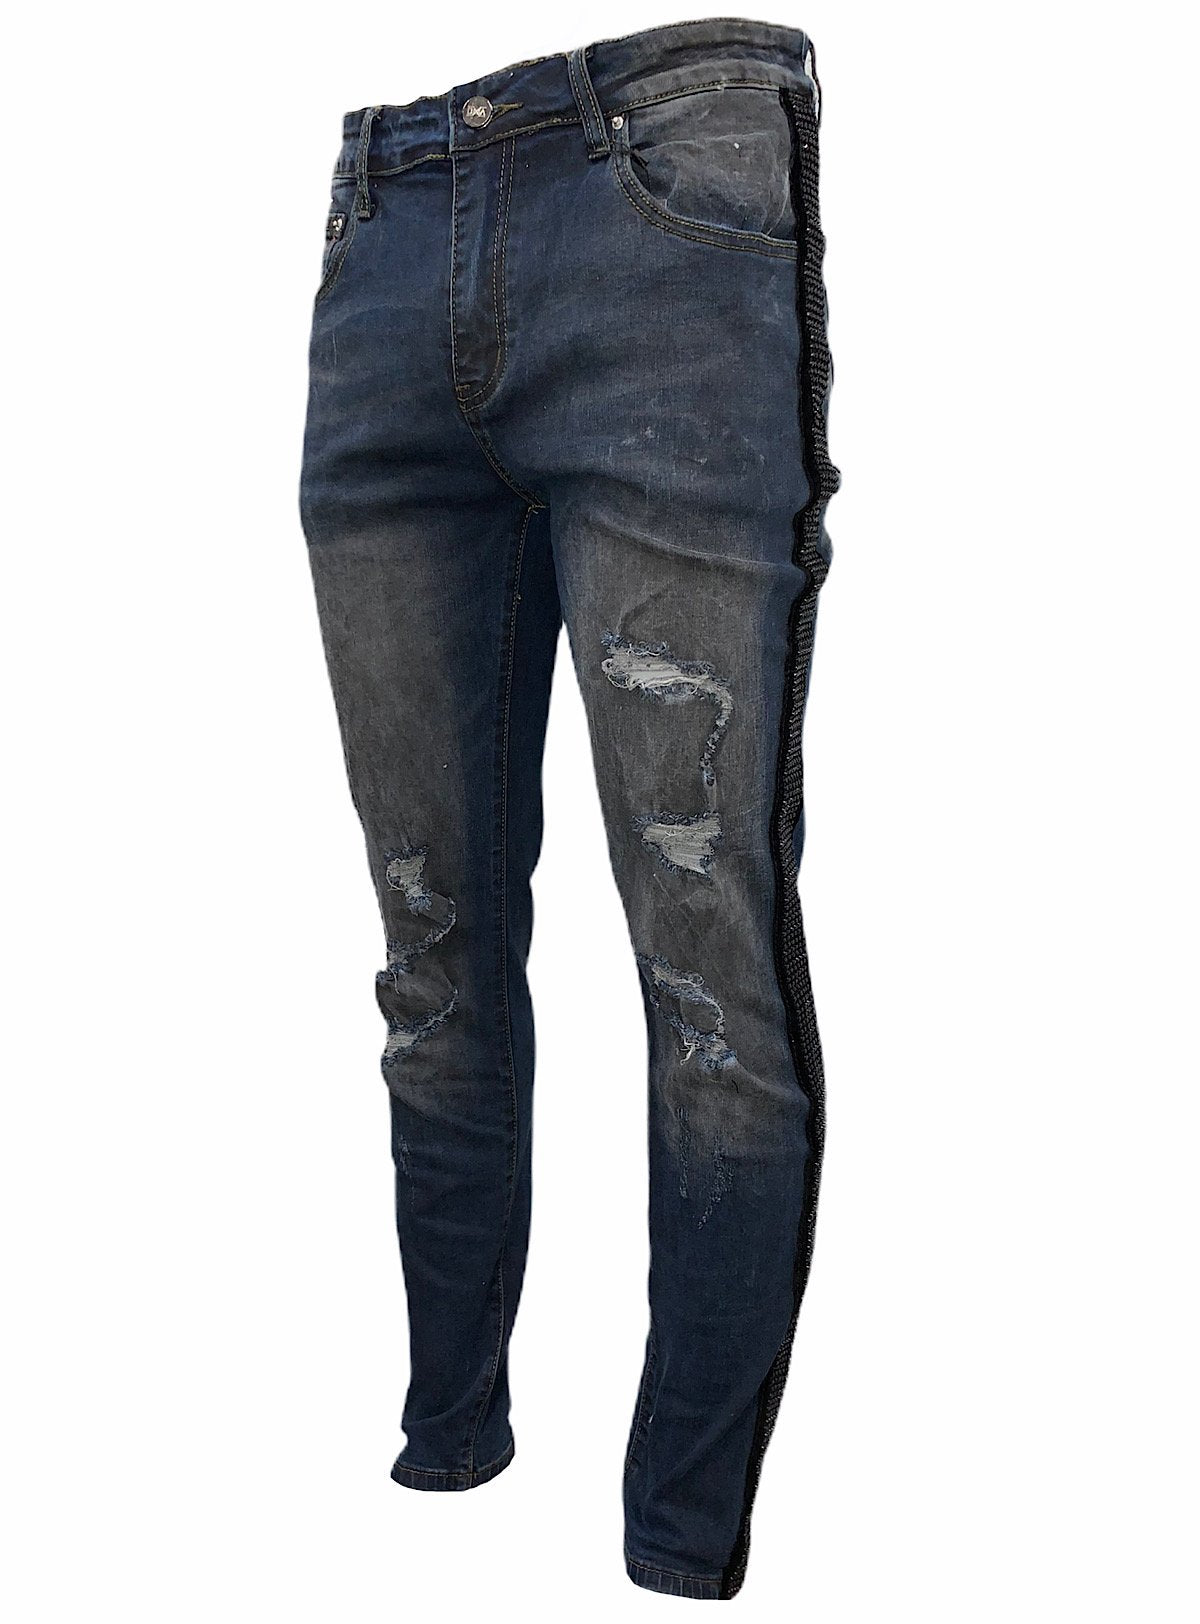 DNA Jeans - Navy Blue And Black Stones